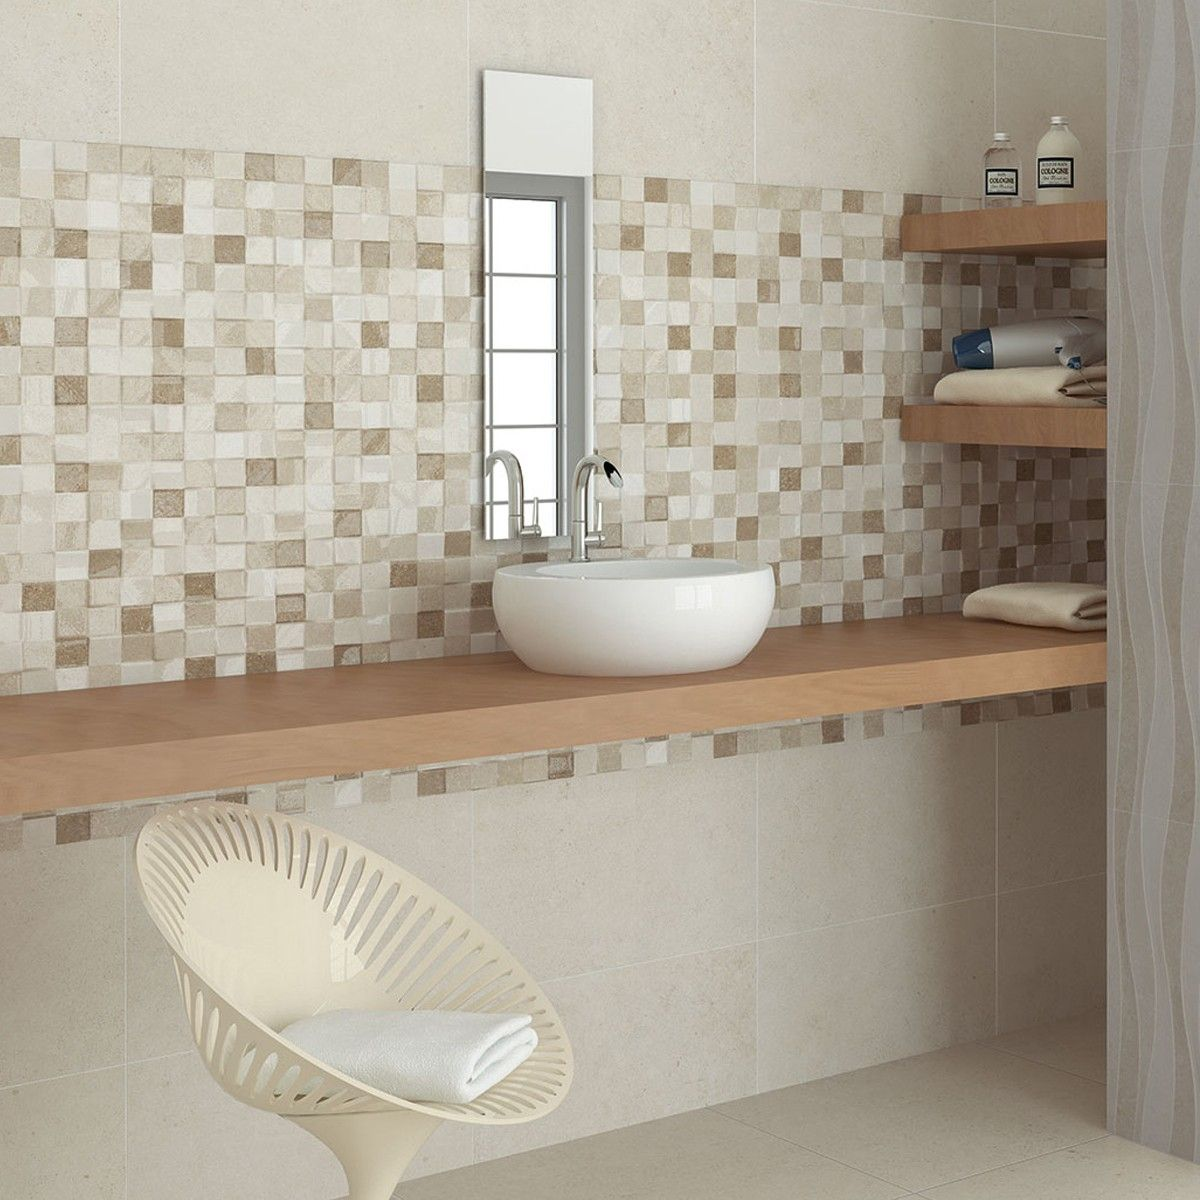 55x33 3 adelaide beige mosaic bathroom wall tiles wall Mosaic tile designs for shower